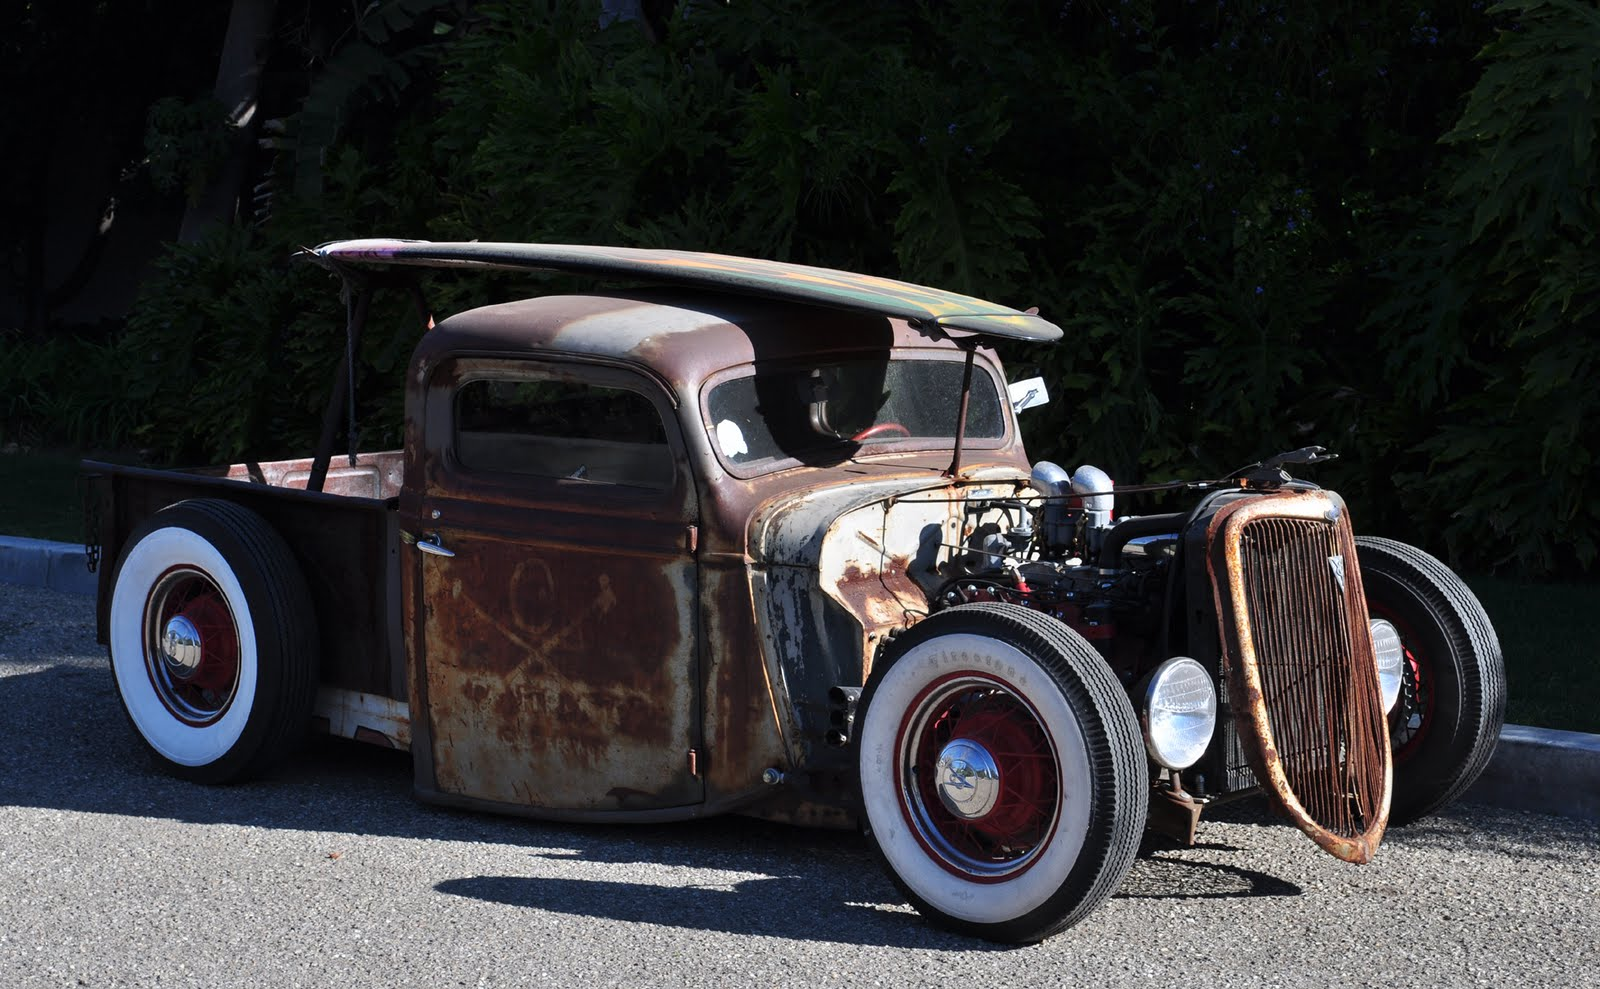 The all rides guy claims it s billy gibbons car http allride skynetblogs be archive 2008 01 30 billy f gibbons rat rod html but i m calling bs until i